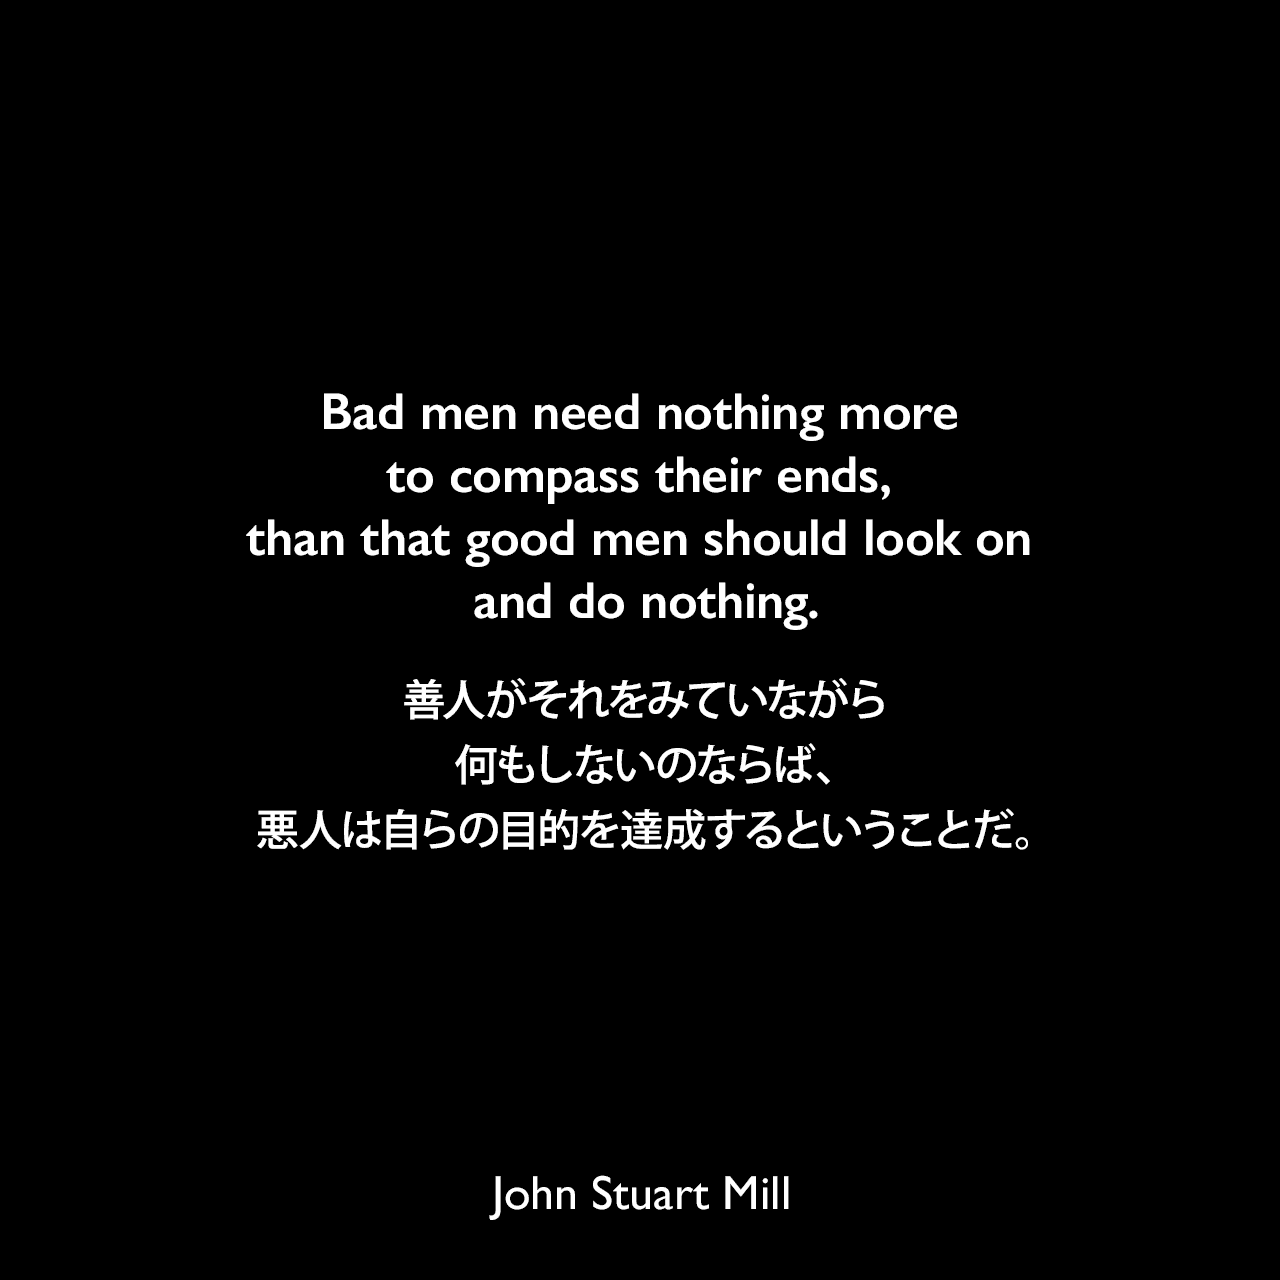 Bad men need nothing more to compass their ends, than that good men should look on and do nothing.善人がそれをみていながら何もしないのならば、悪人は自らの目的を達成するということだ。- 1867年2月、セント・アンドリュース大学の学長就任演説よりJohn Stuart Mill